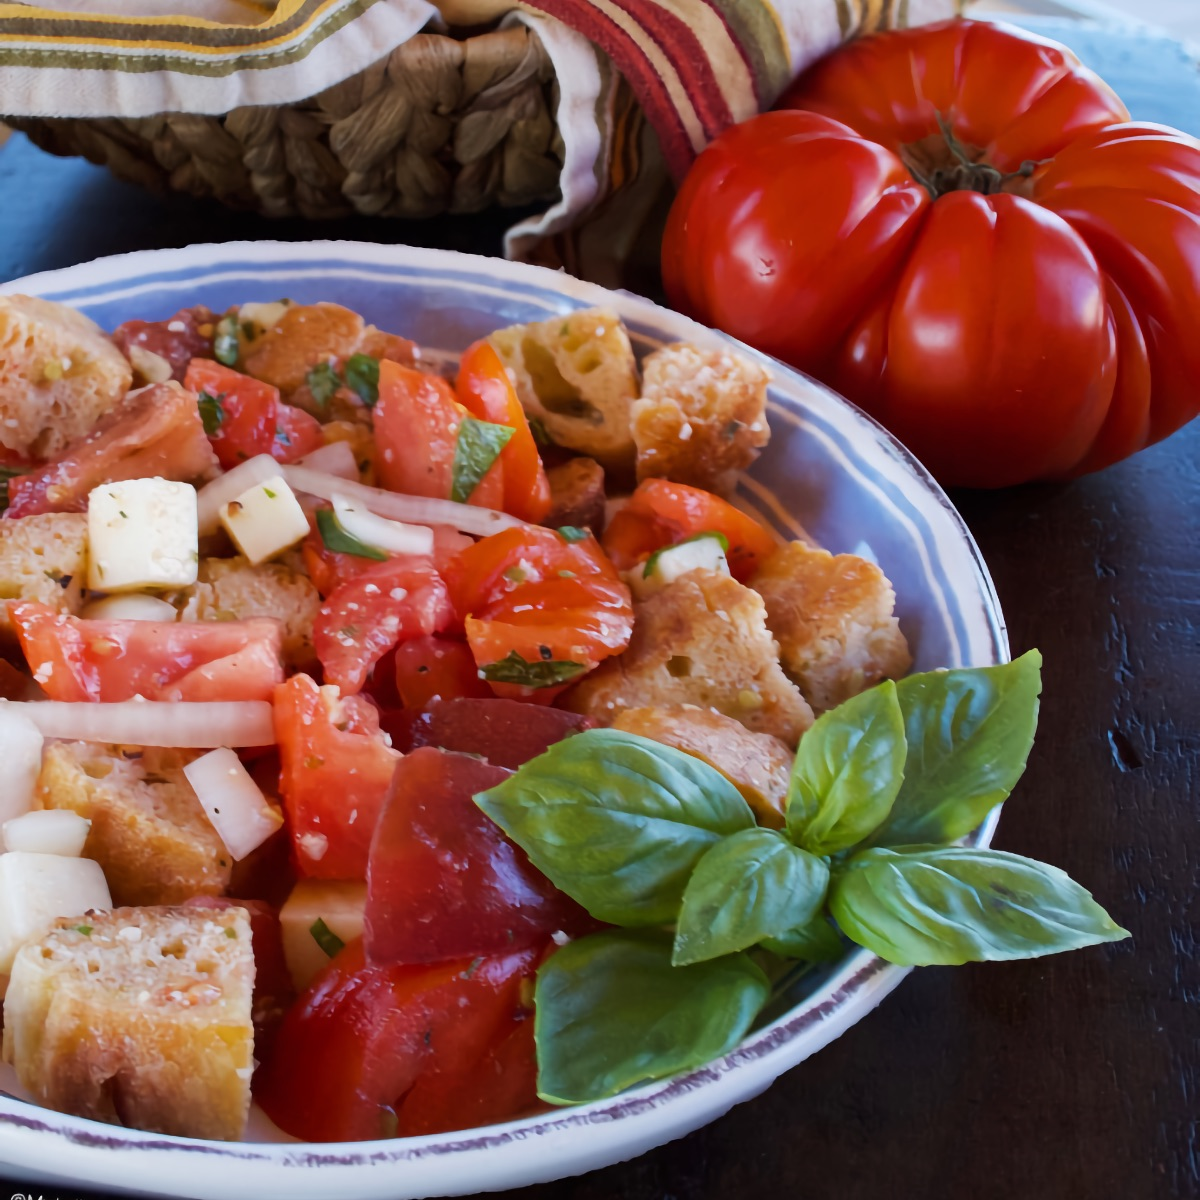 Summer Panzanella Salad garnished with a sprig of basil. An heirloom tomato sits in the background.